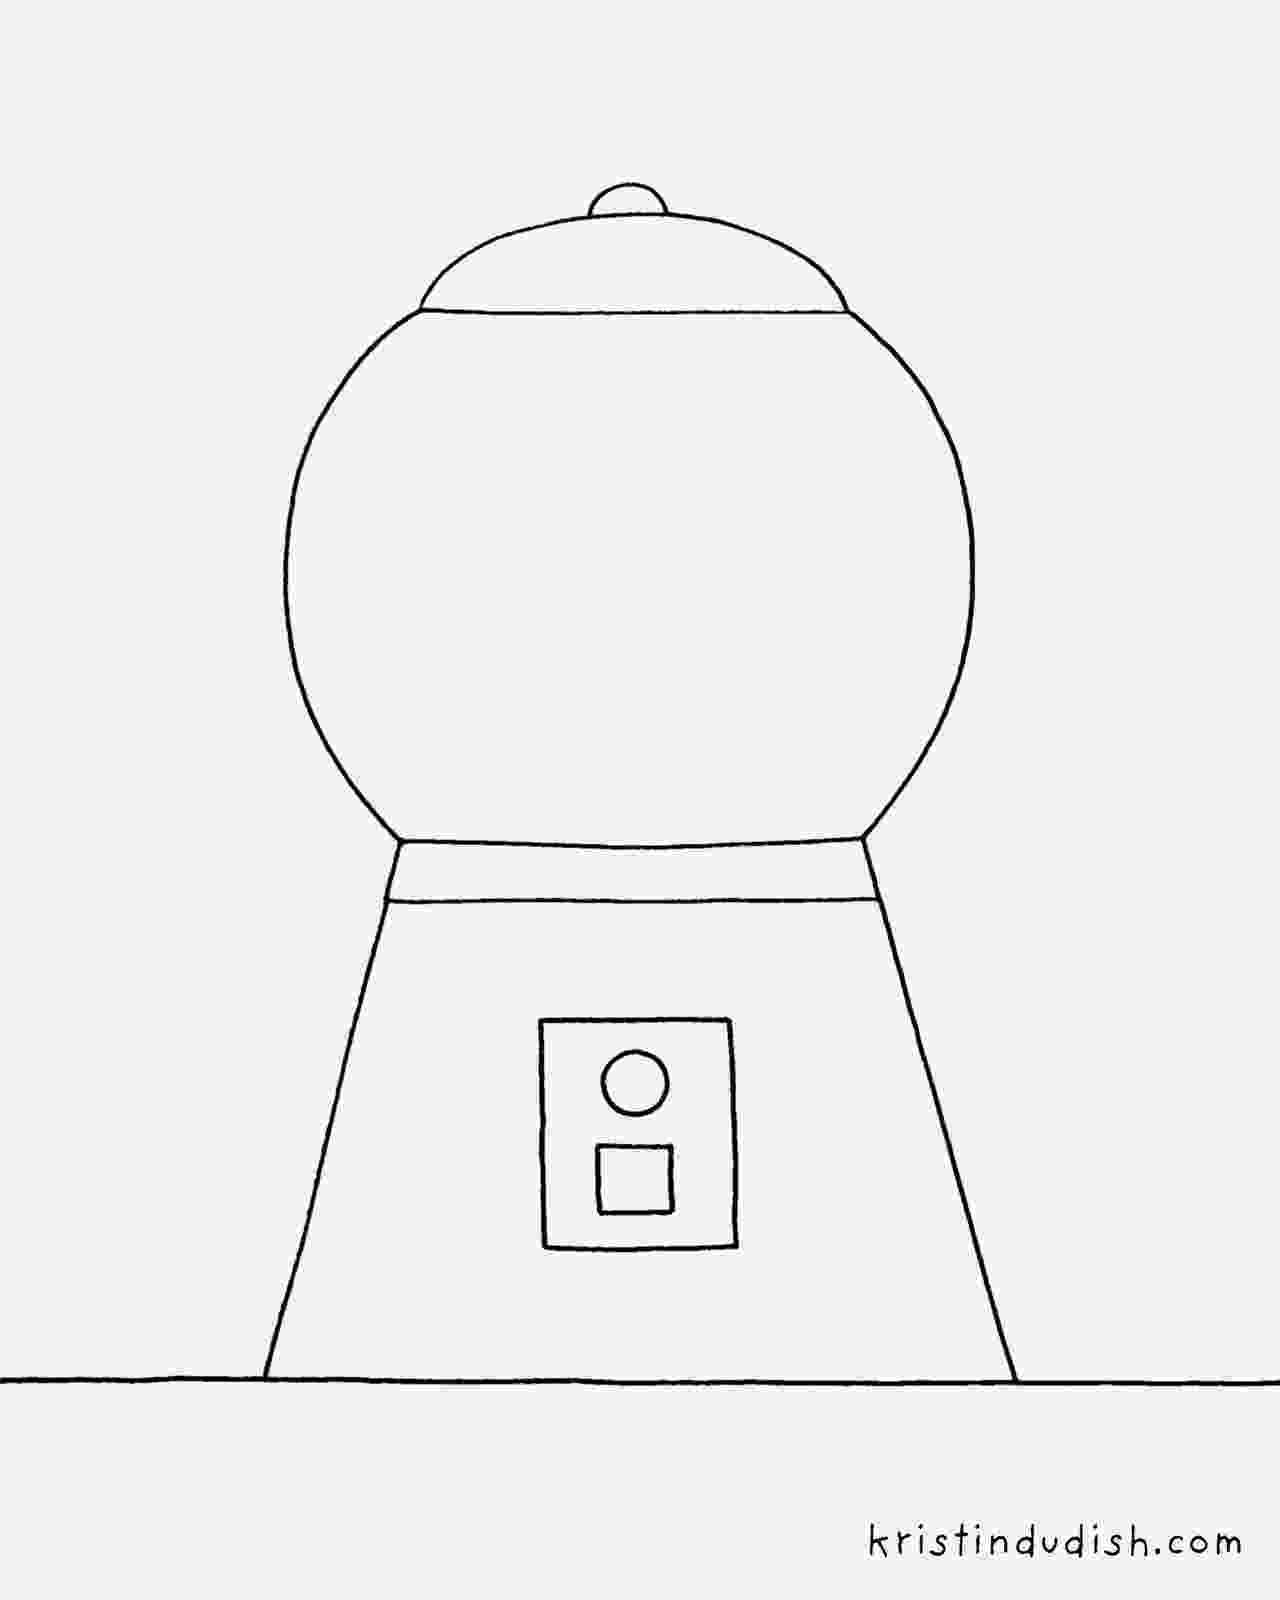 gumball machine coloring page items similar to gumball machine zentangle coloring page machine coloring page gumball